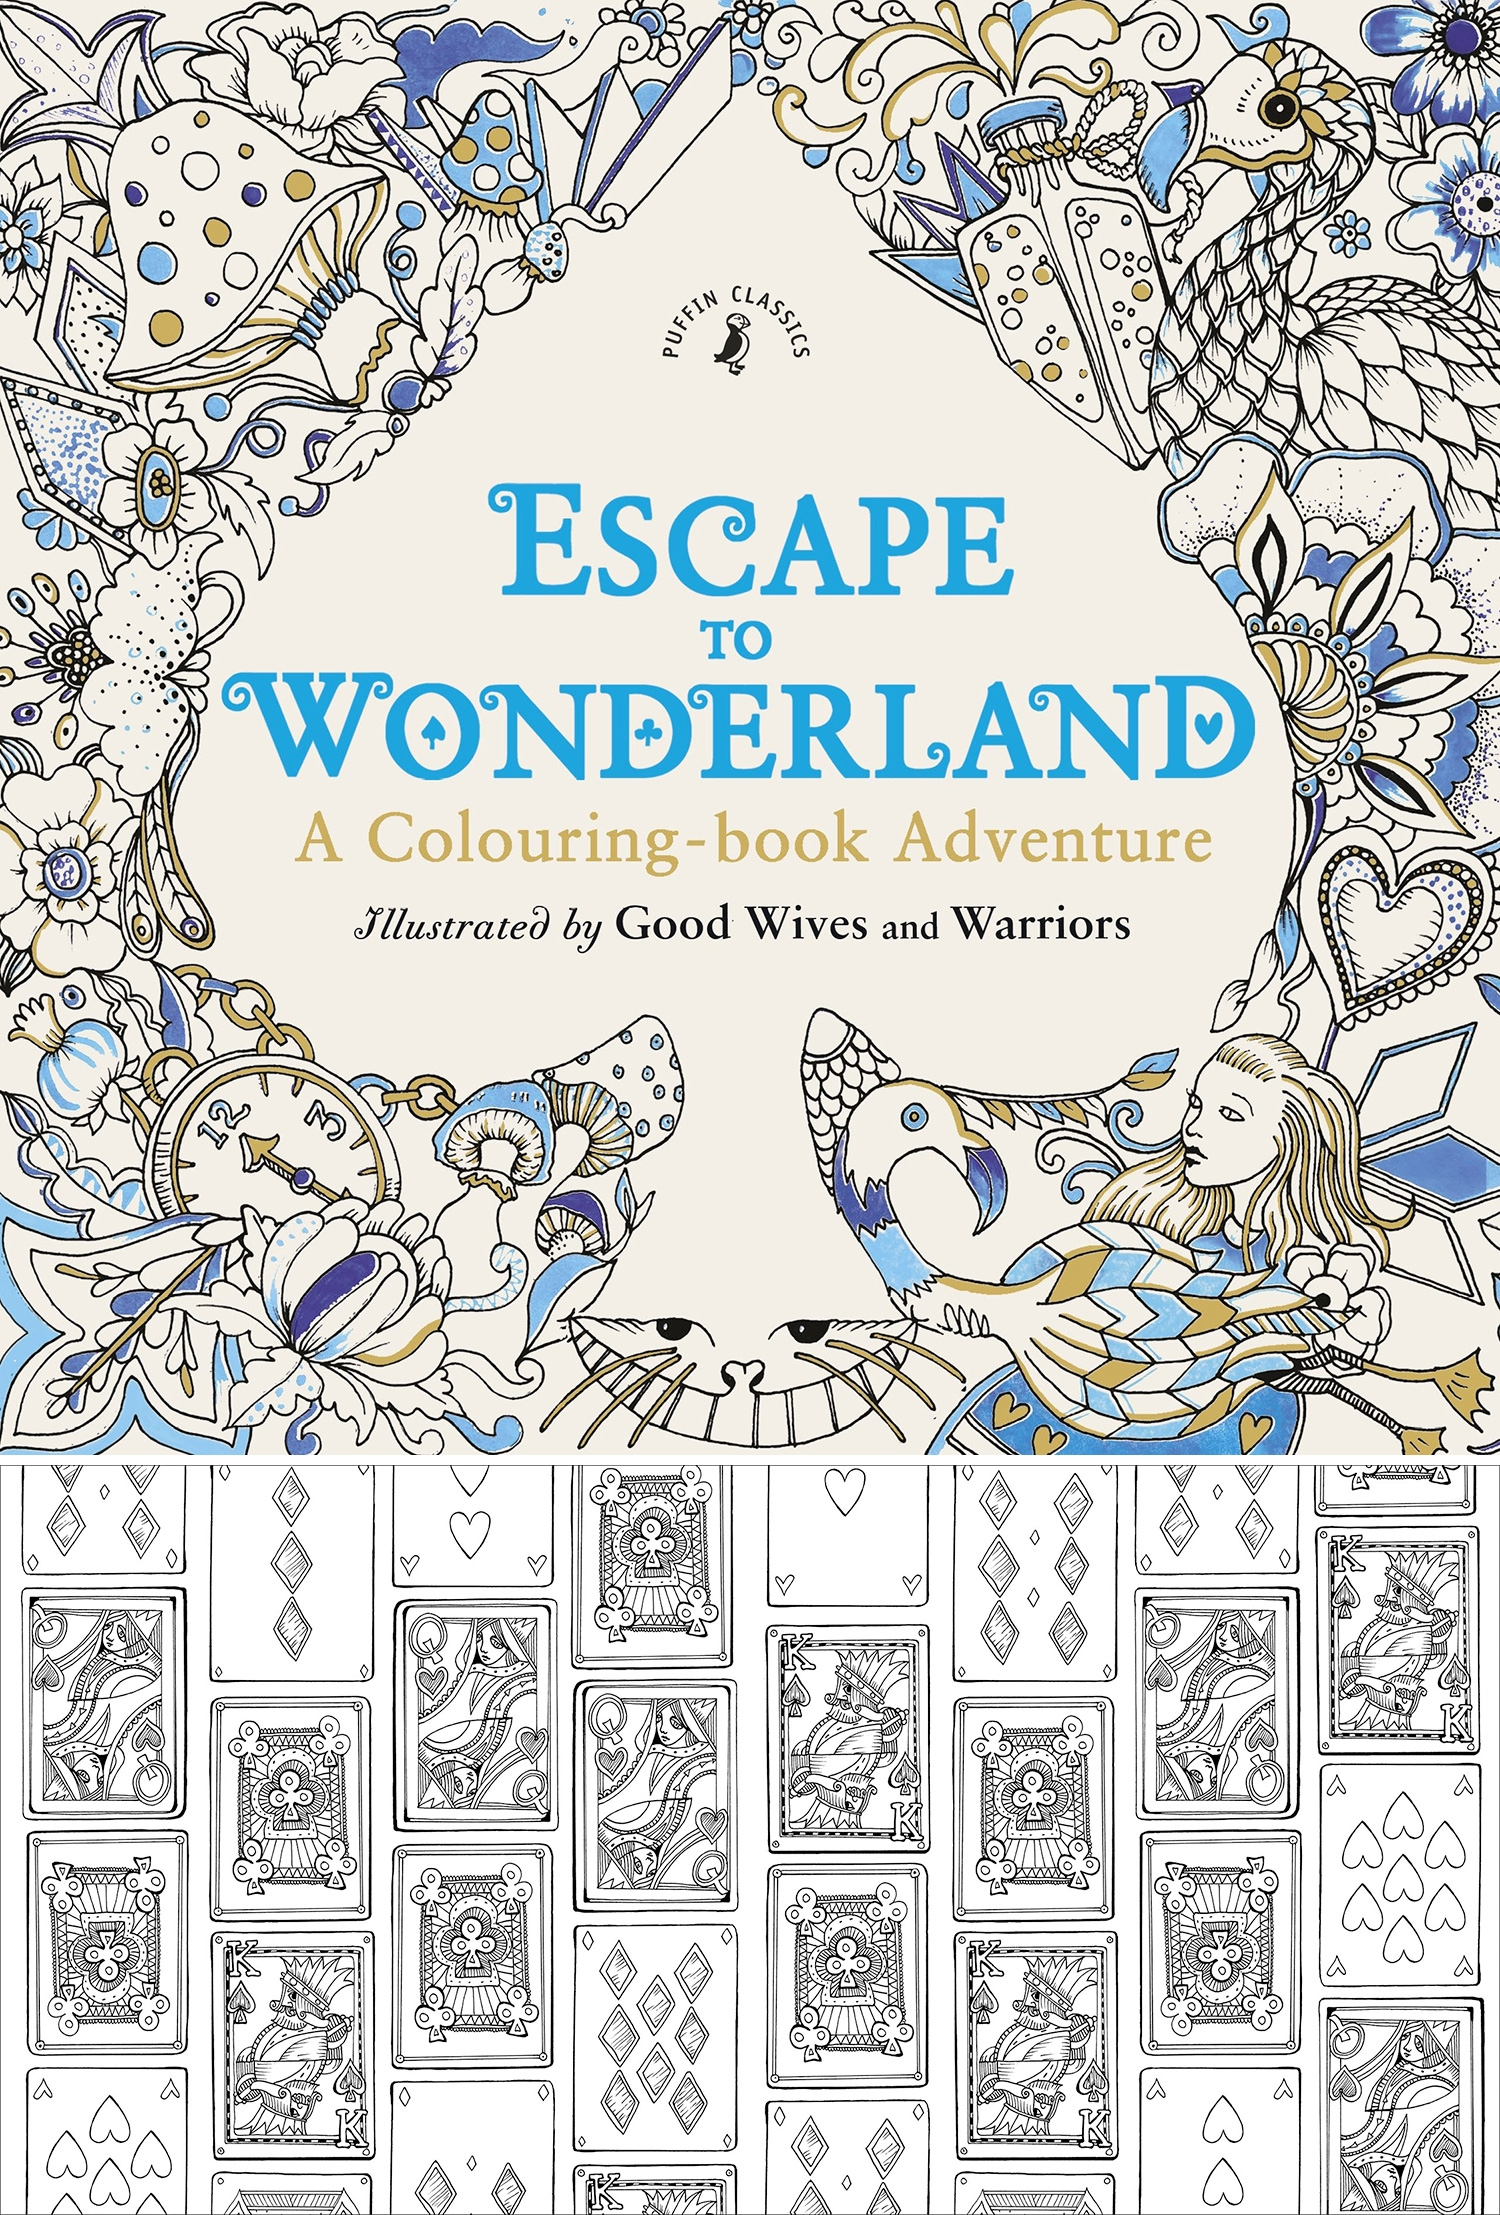 Best grown up coloring books - Buy Good Wives And Warriors Escape To Wonderland A Colouring Book Adventure From Amazon Book Depository Waterstones And Other Major Retailers